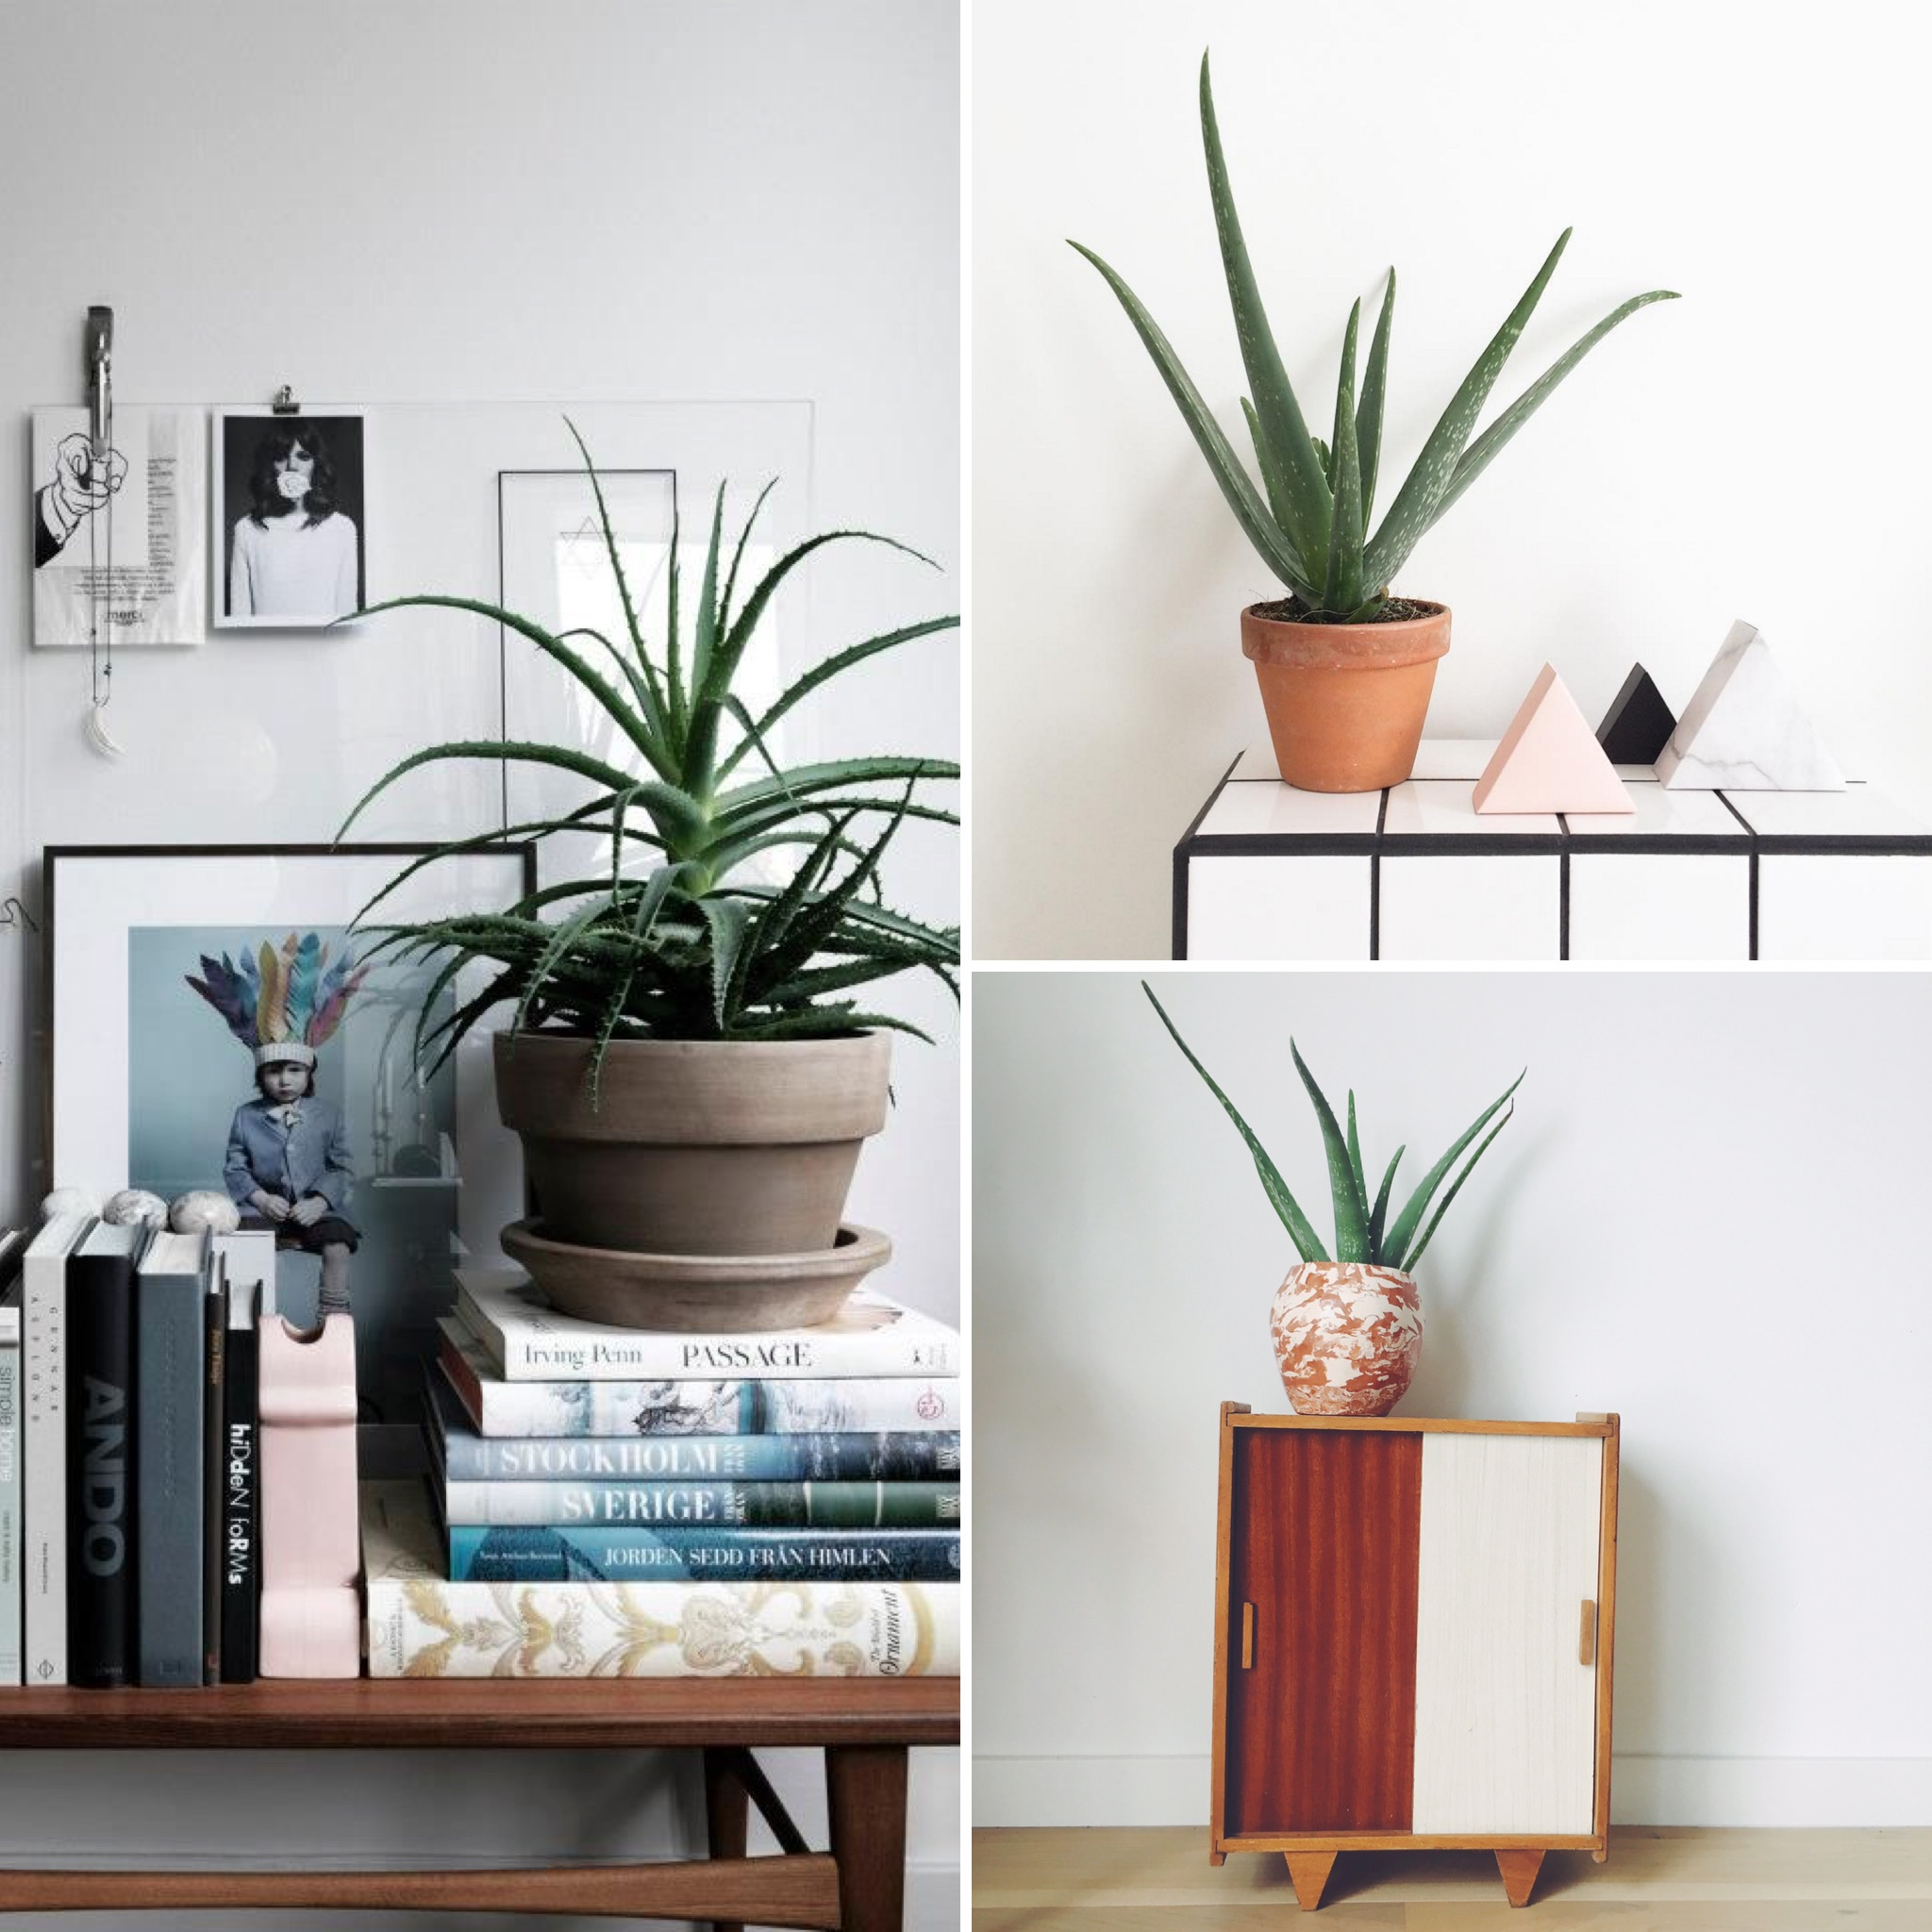 Les IT plantes | elephant in the room